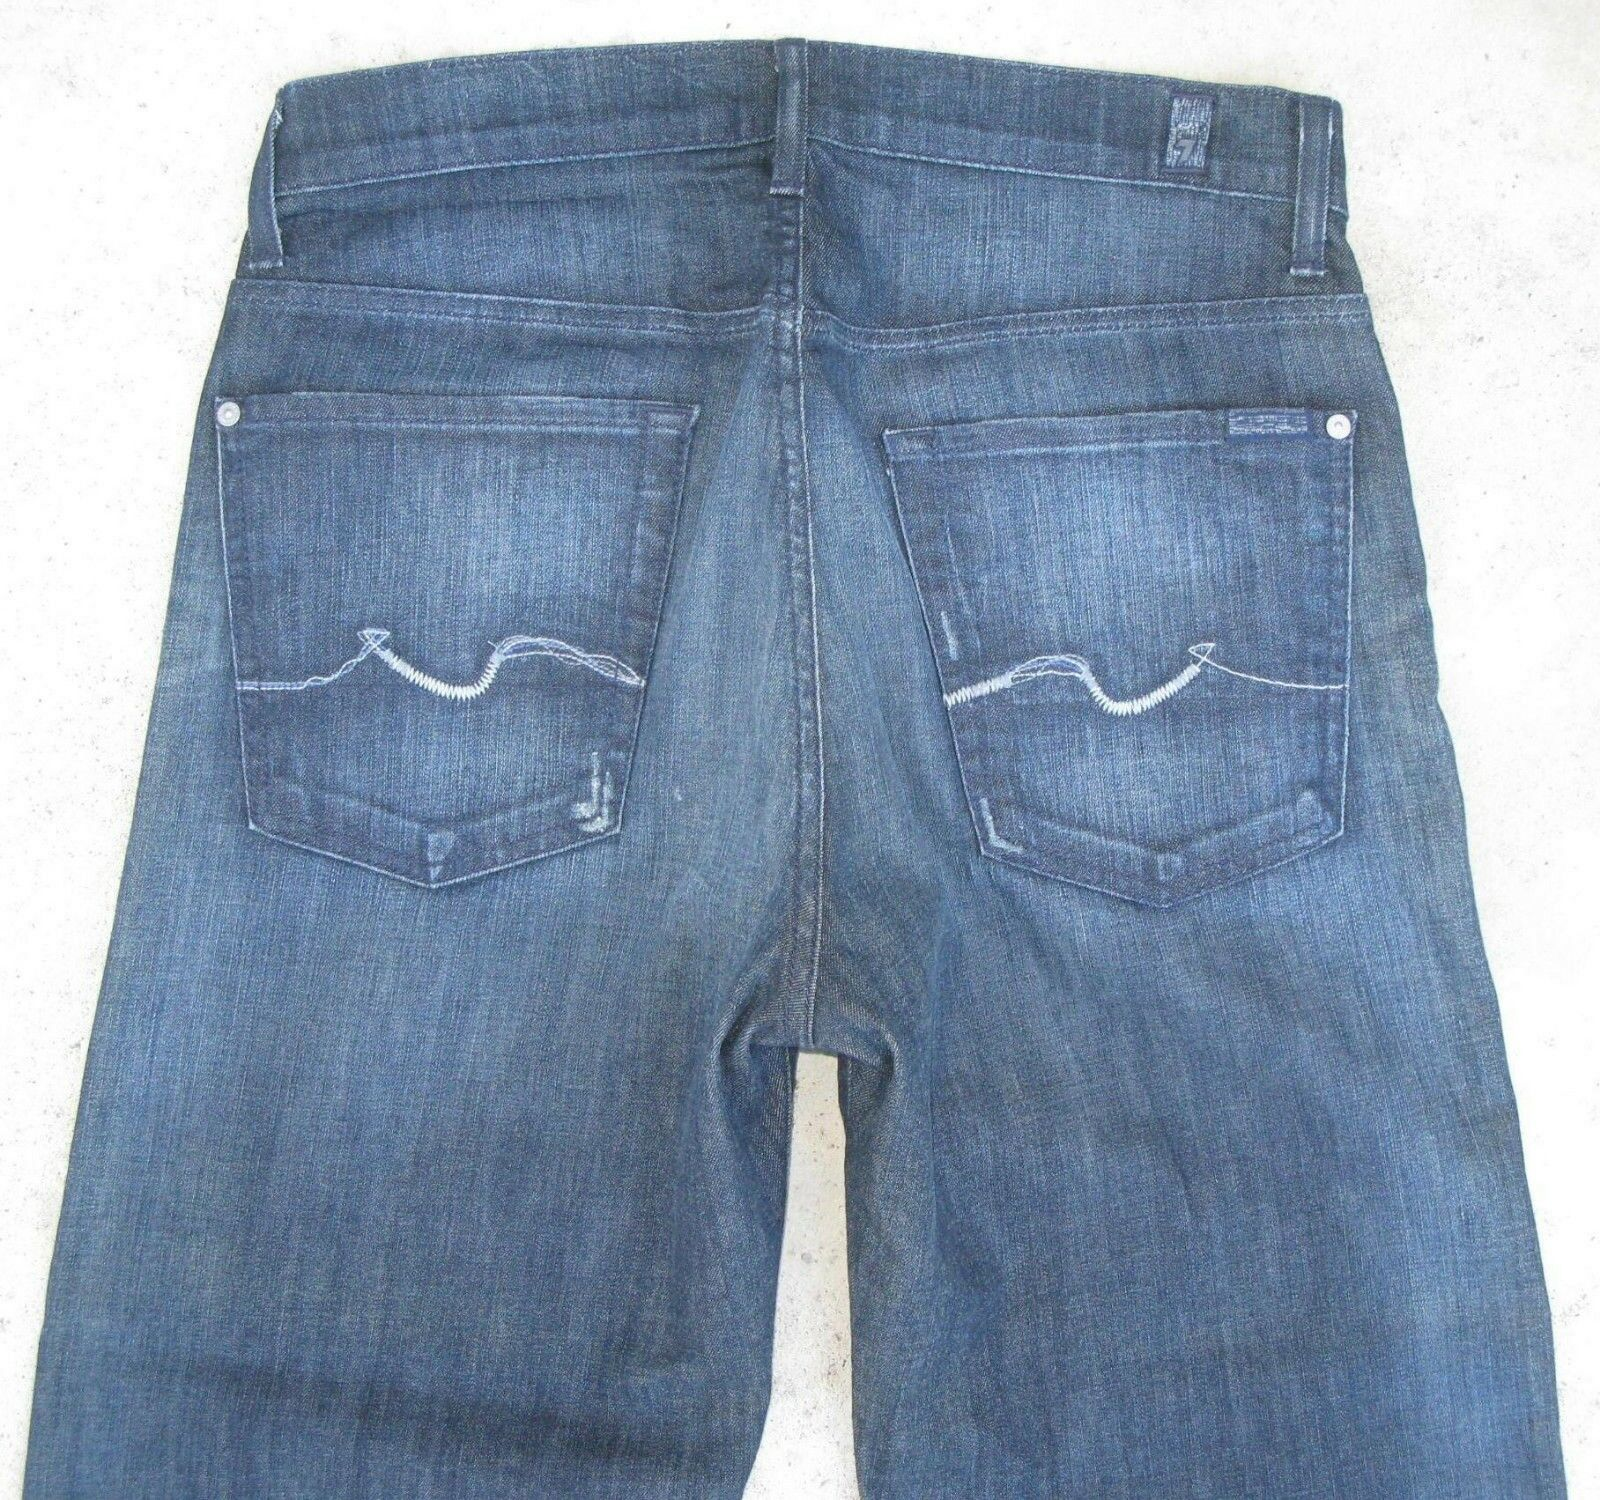 7 For all Mankind Mens Relaxed Jeans Sz 32 X 27 w Stretch Dark Distressed